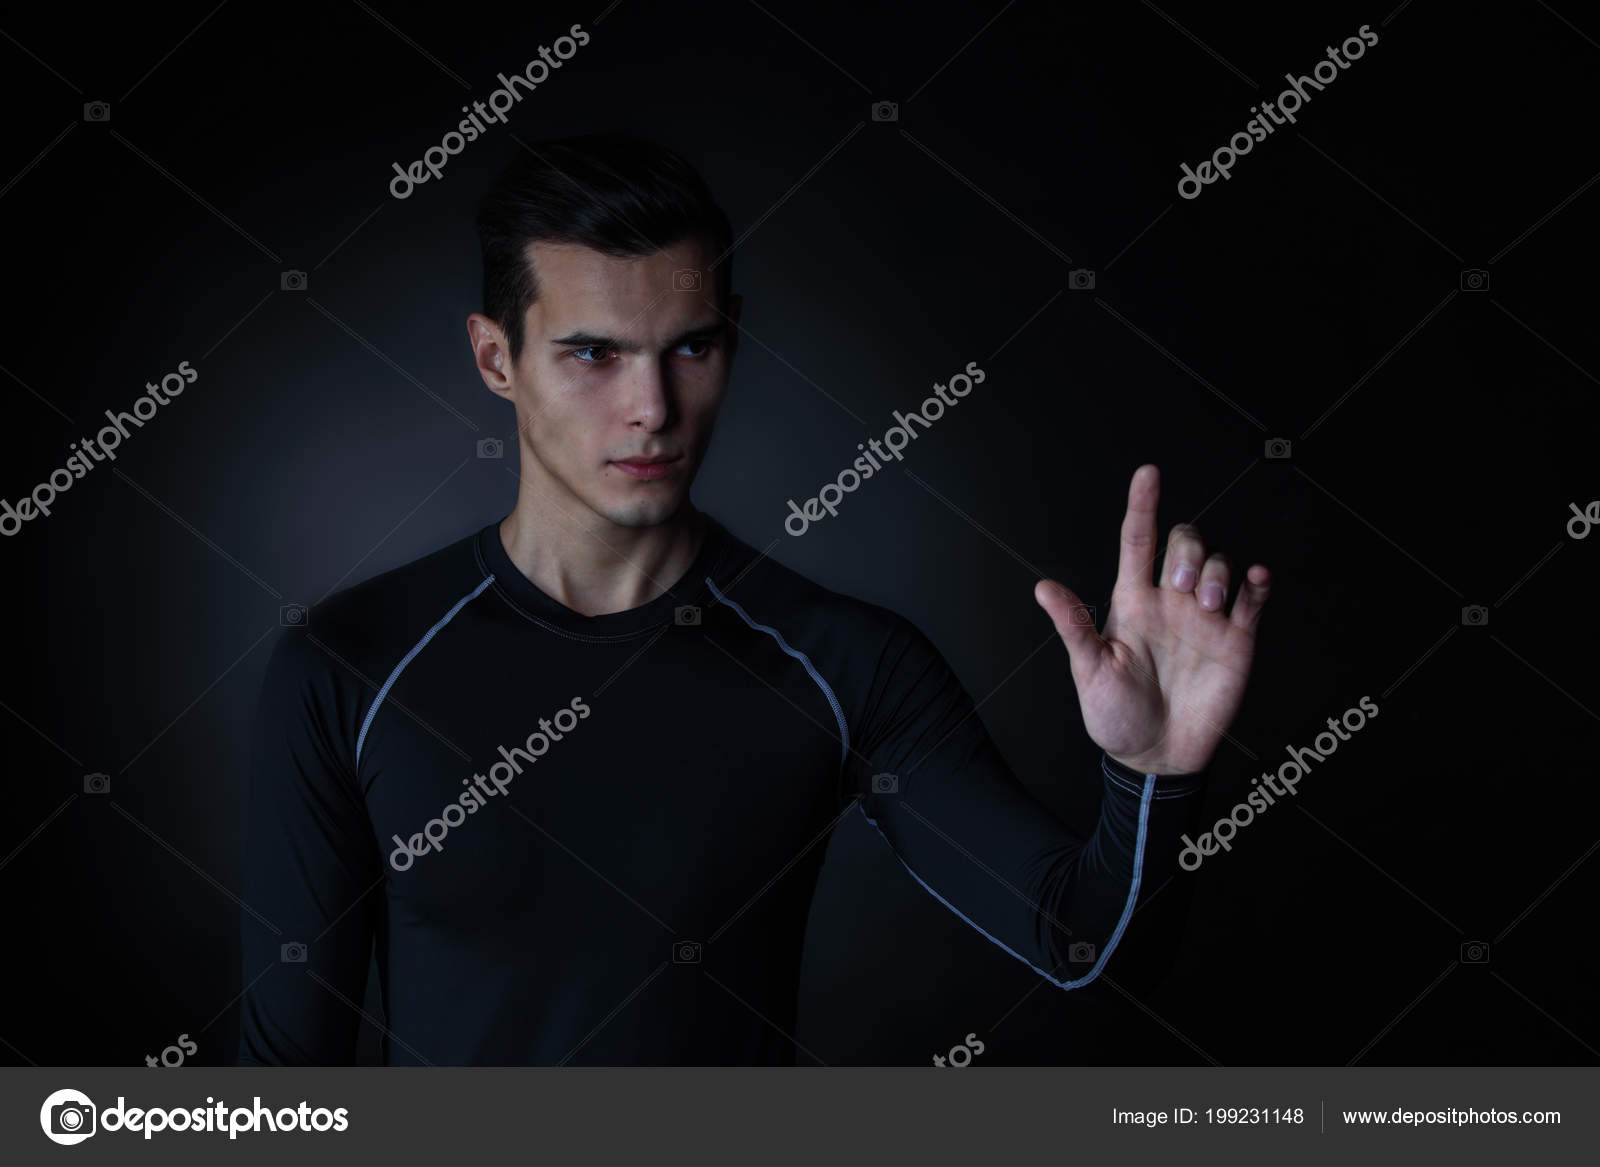 Man Touching Futuristic Invisible Display Innovation Future Concept